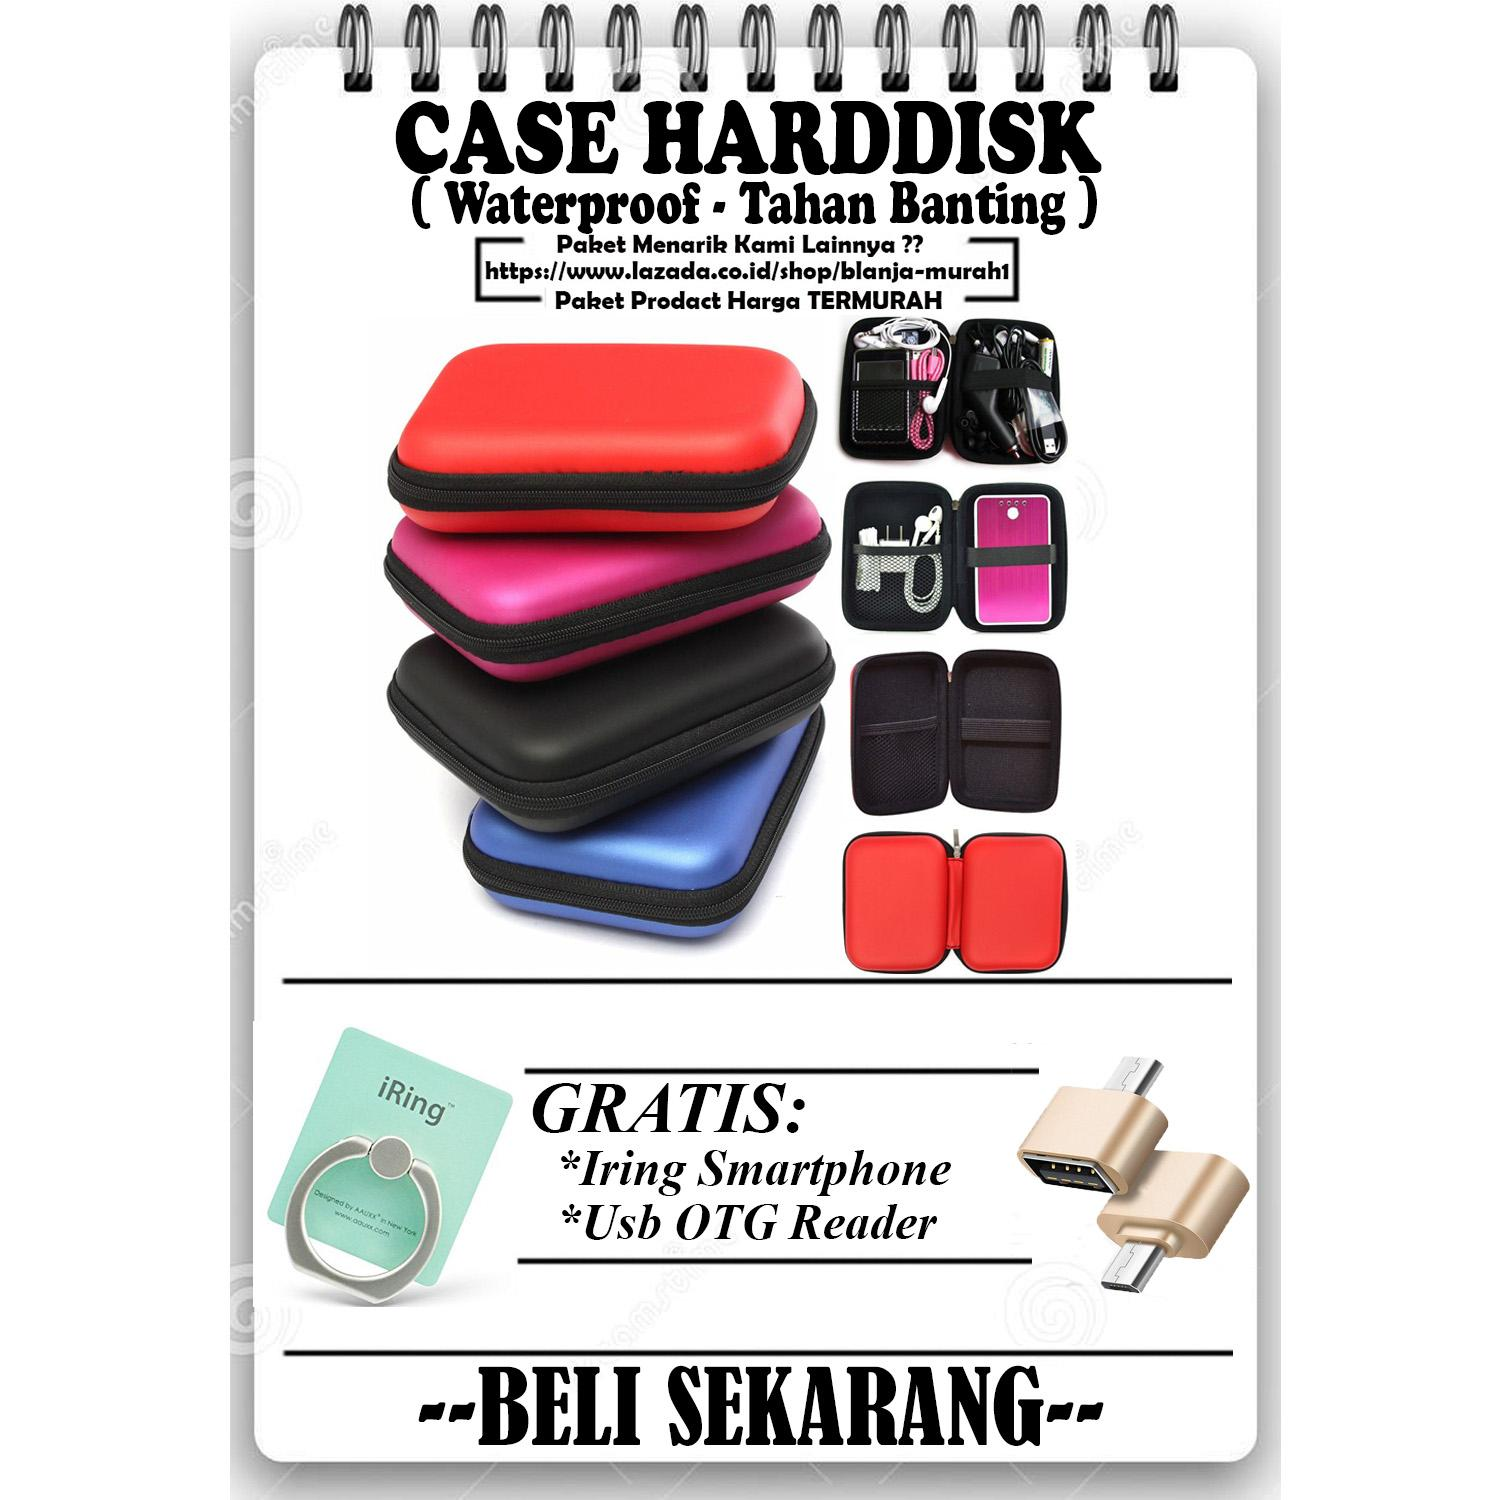 Promo Sale Sofcase Harddisk Hard Case Shockproof Tas Hardisk / Powerbank Tahan Banting for External HDD 2.5 inch Pouch Bag - GRATIS Usb OTG Reader Android & Iring Stand Hp / Tablet